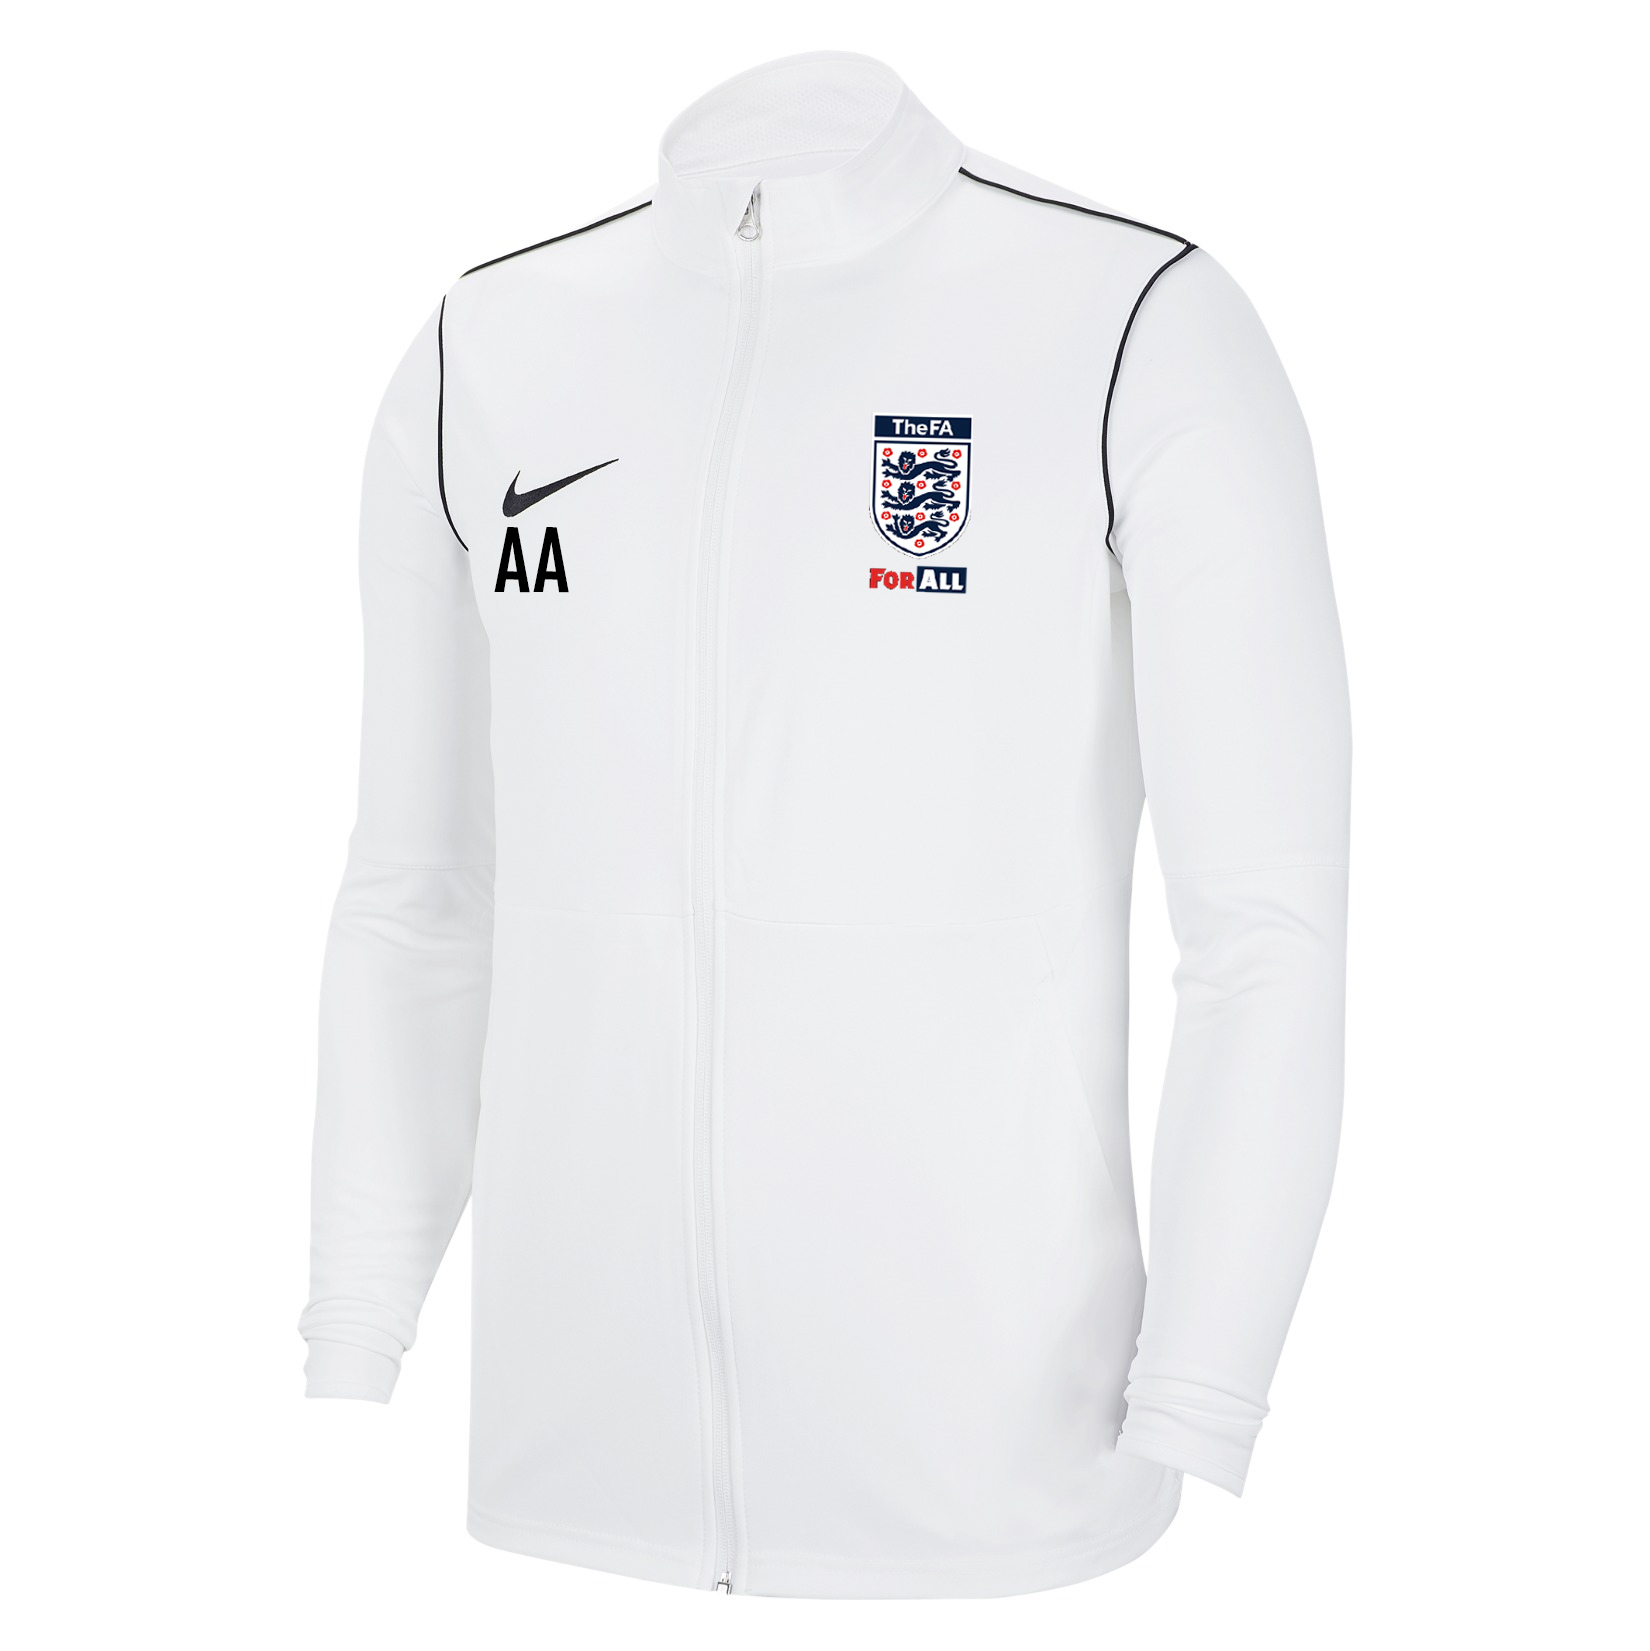 Nike Dri-FIT Park 20 Knitted Track Jacket White-Black-Black